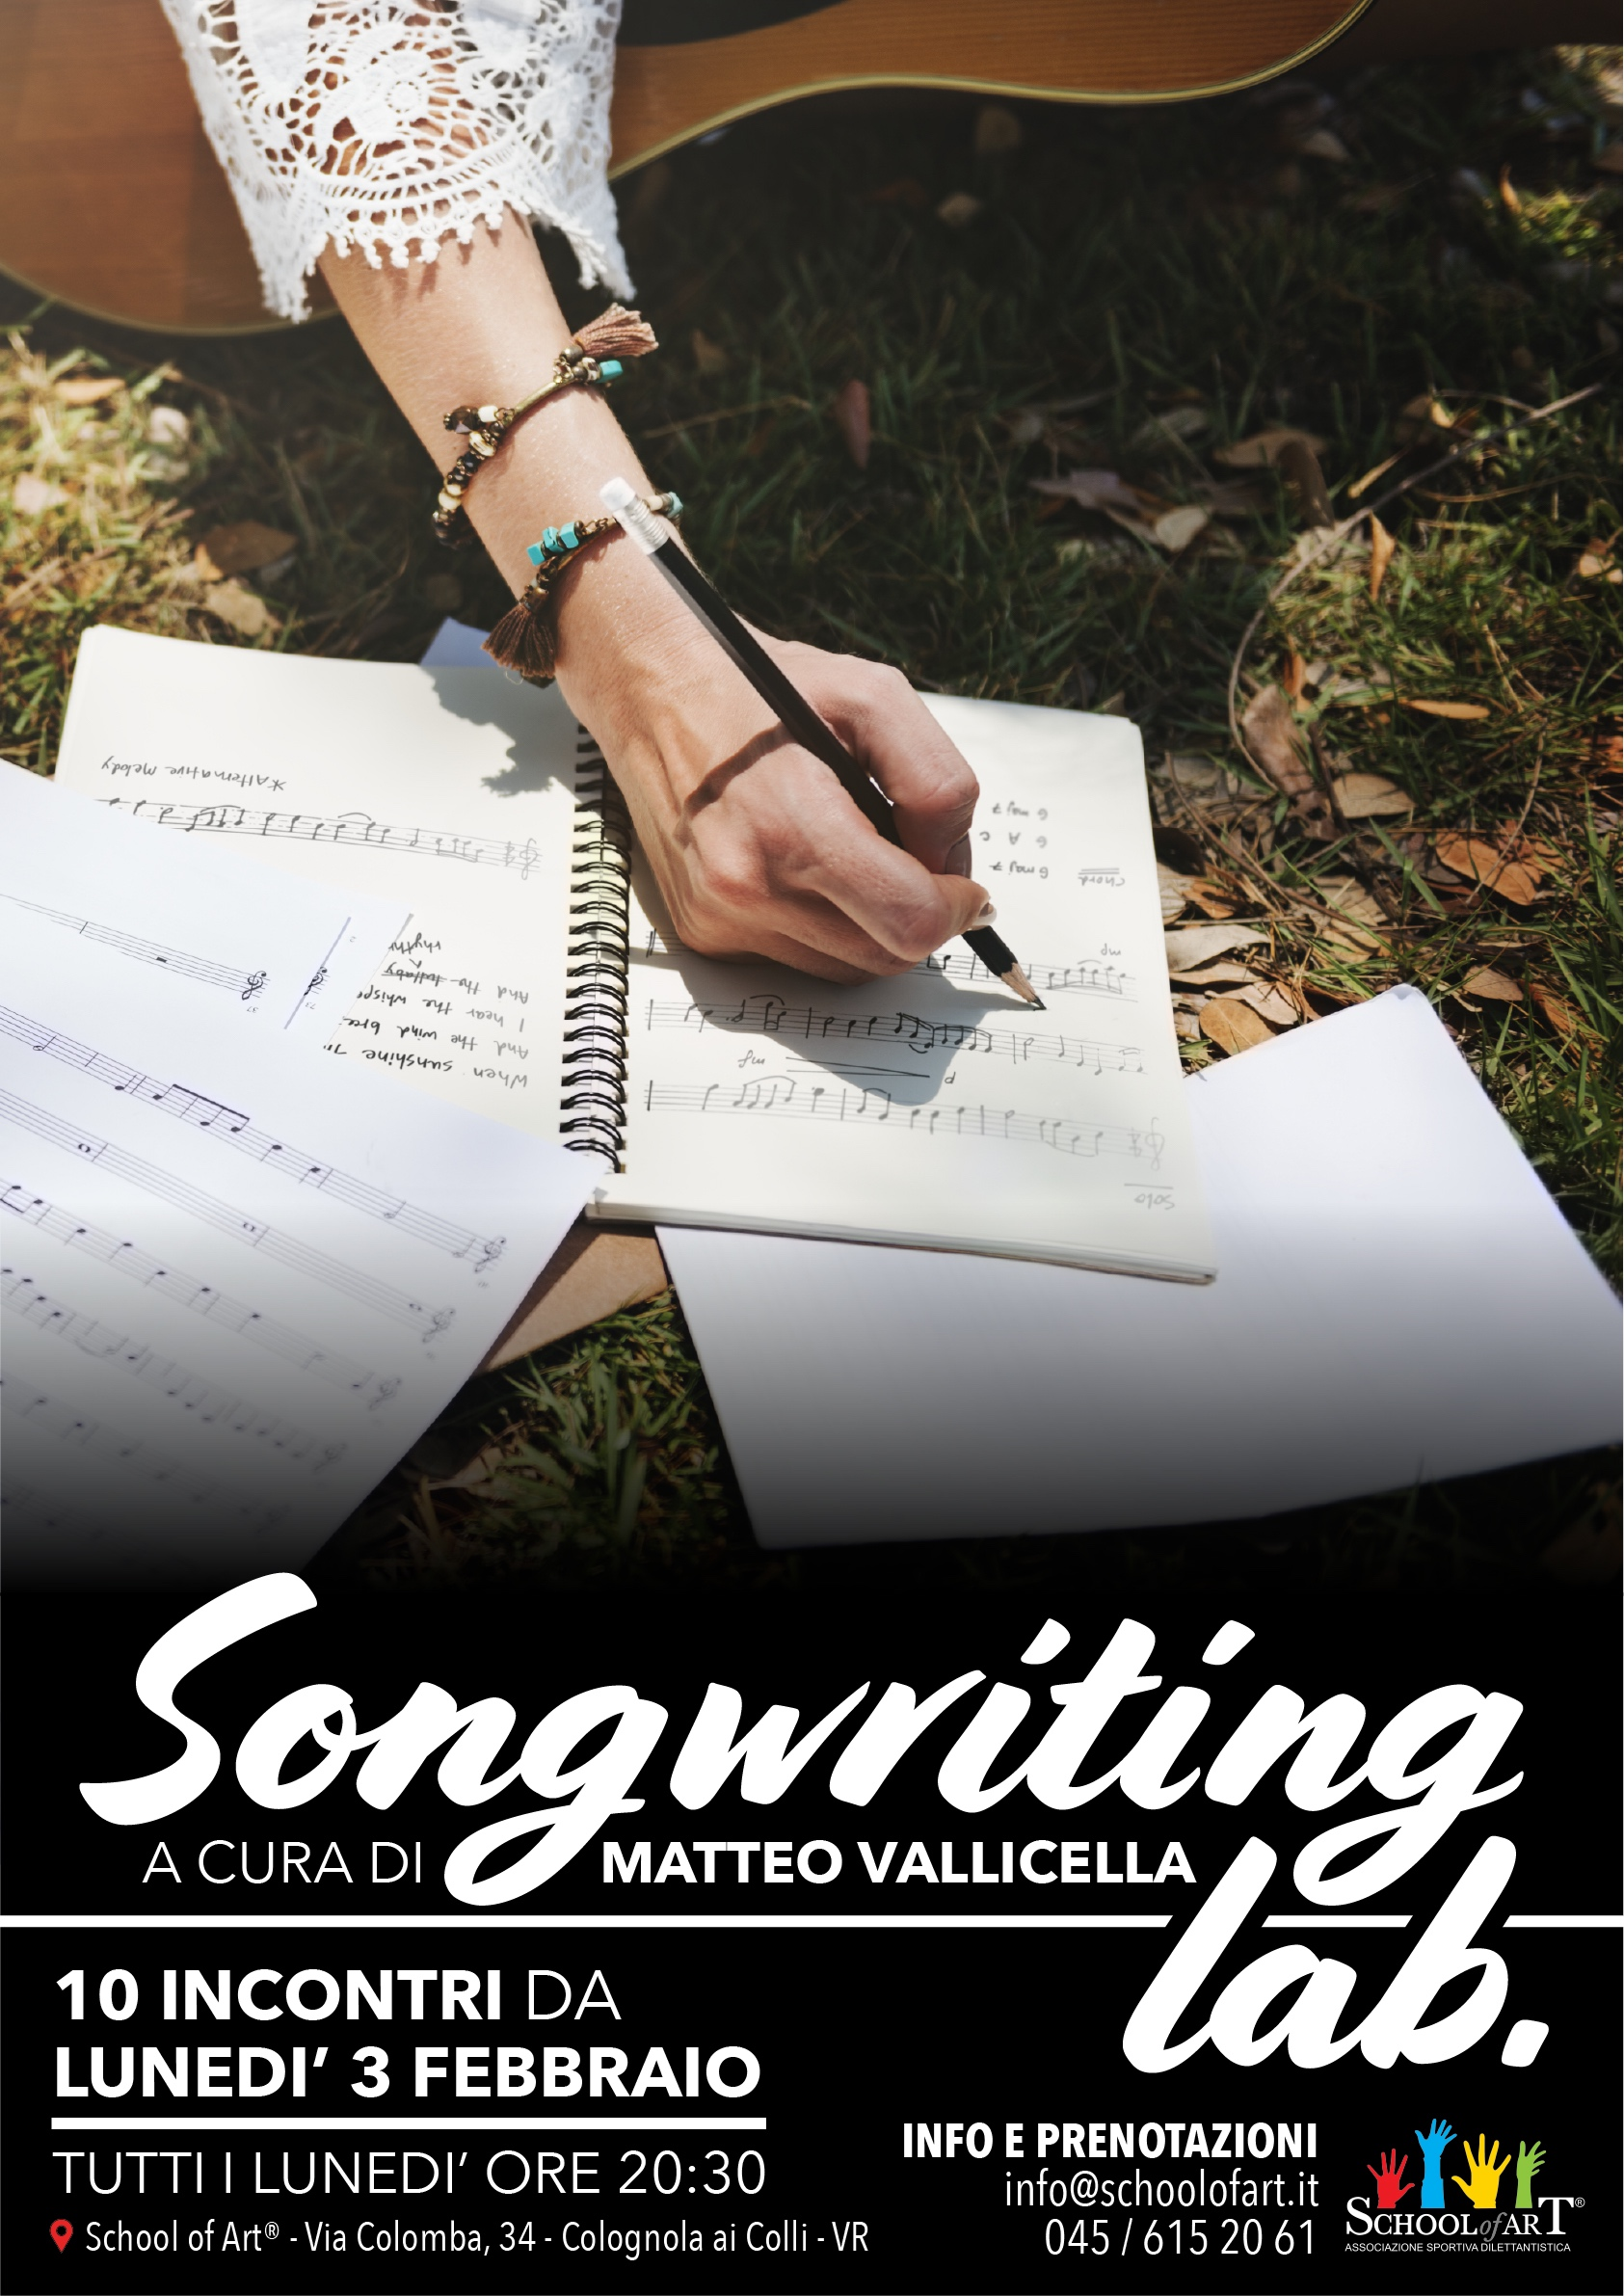 Corso di Songwriting a cura di Matteo Vallicella a Verona e provincia - School of Art®